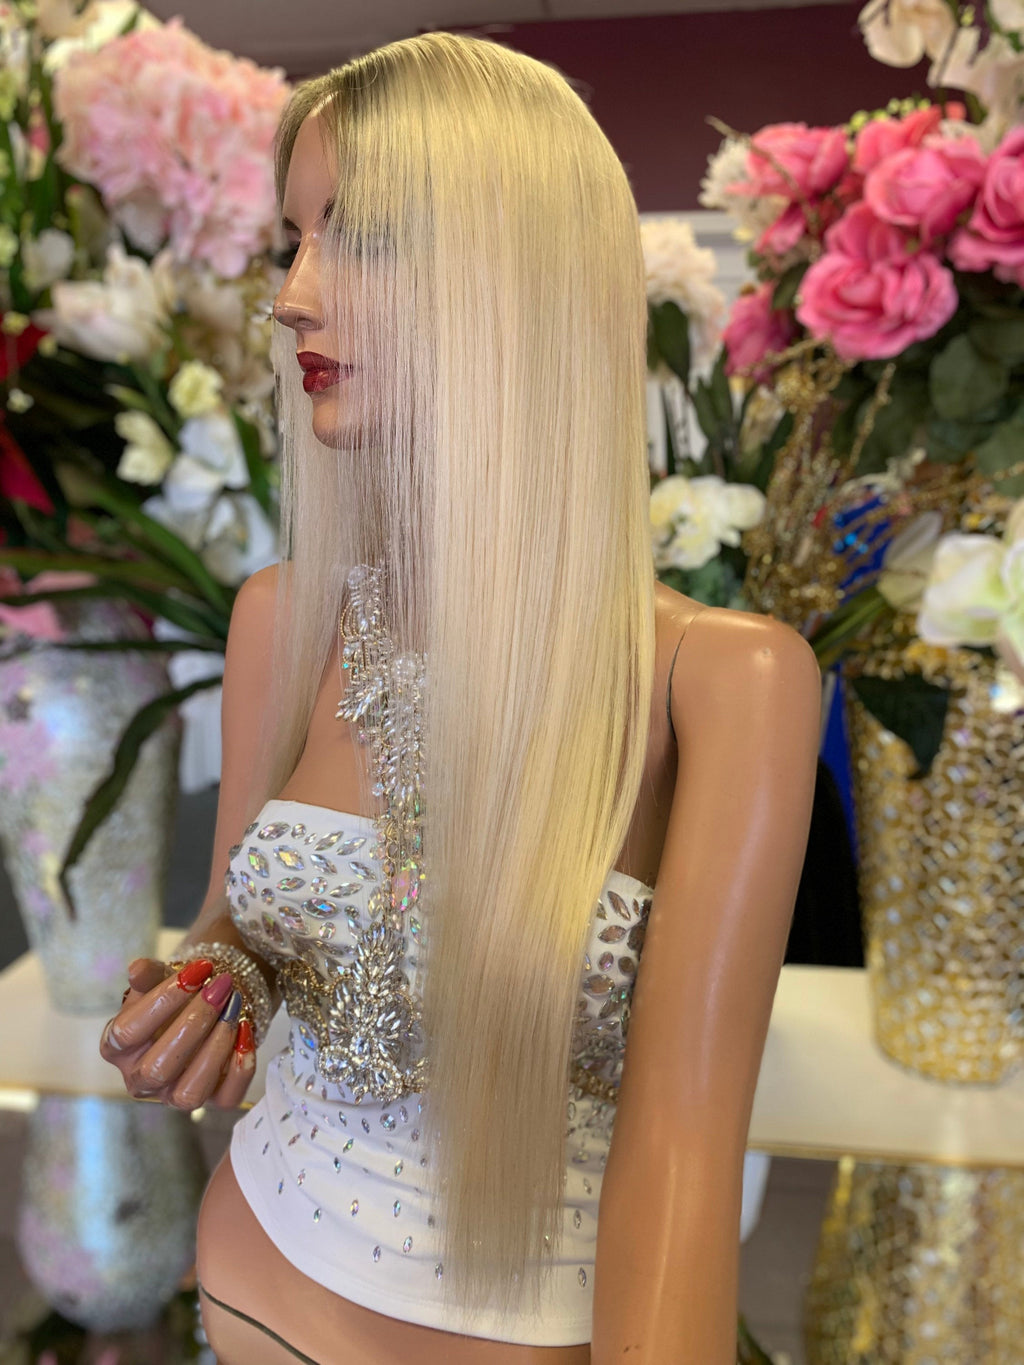 HUMAN HAIR Full lace Wig,  Natural Blonde with some Dark Brown Root Regrowth, Virgin hair, 22 Inches